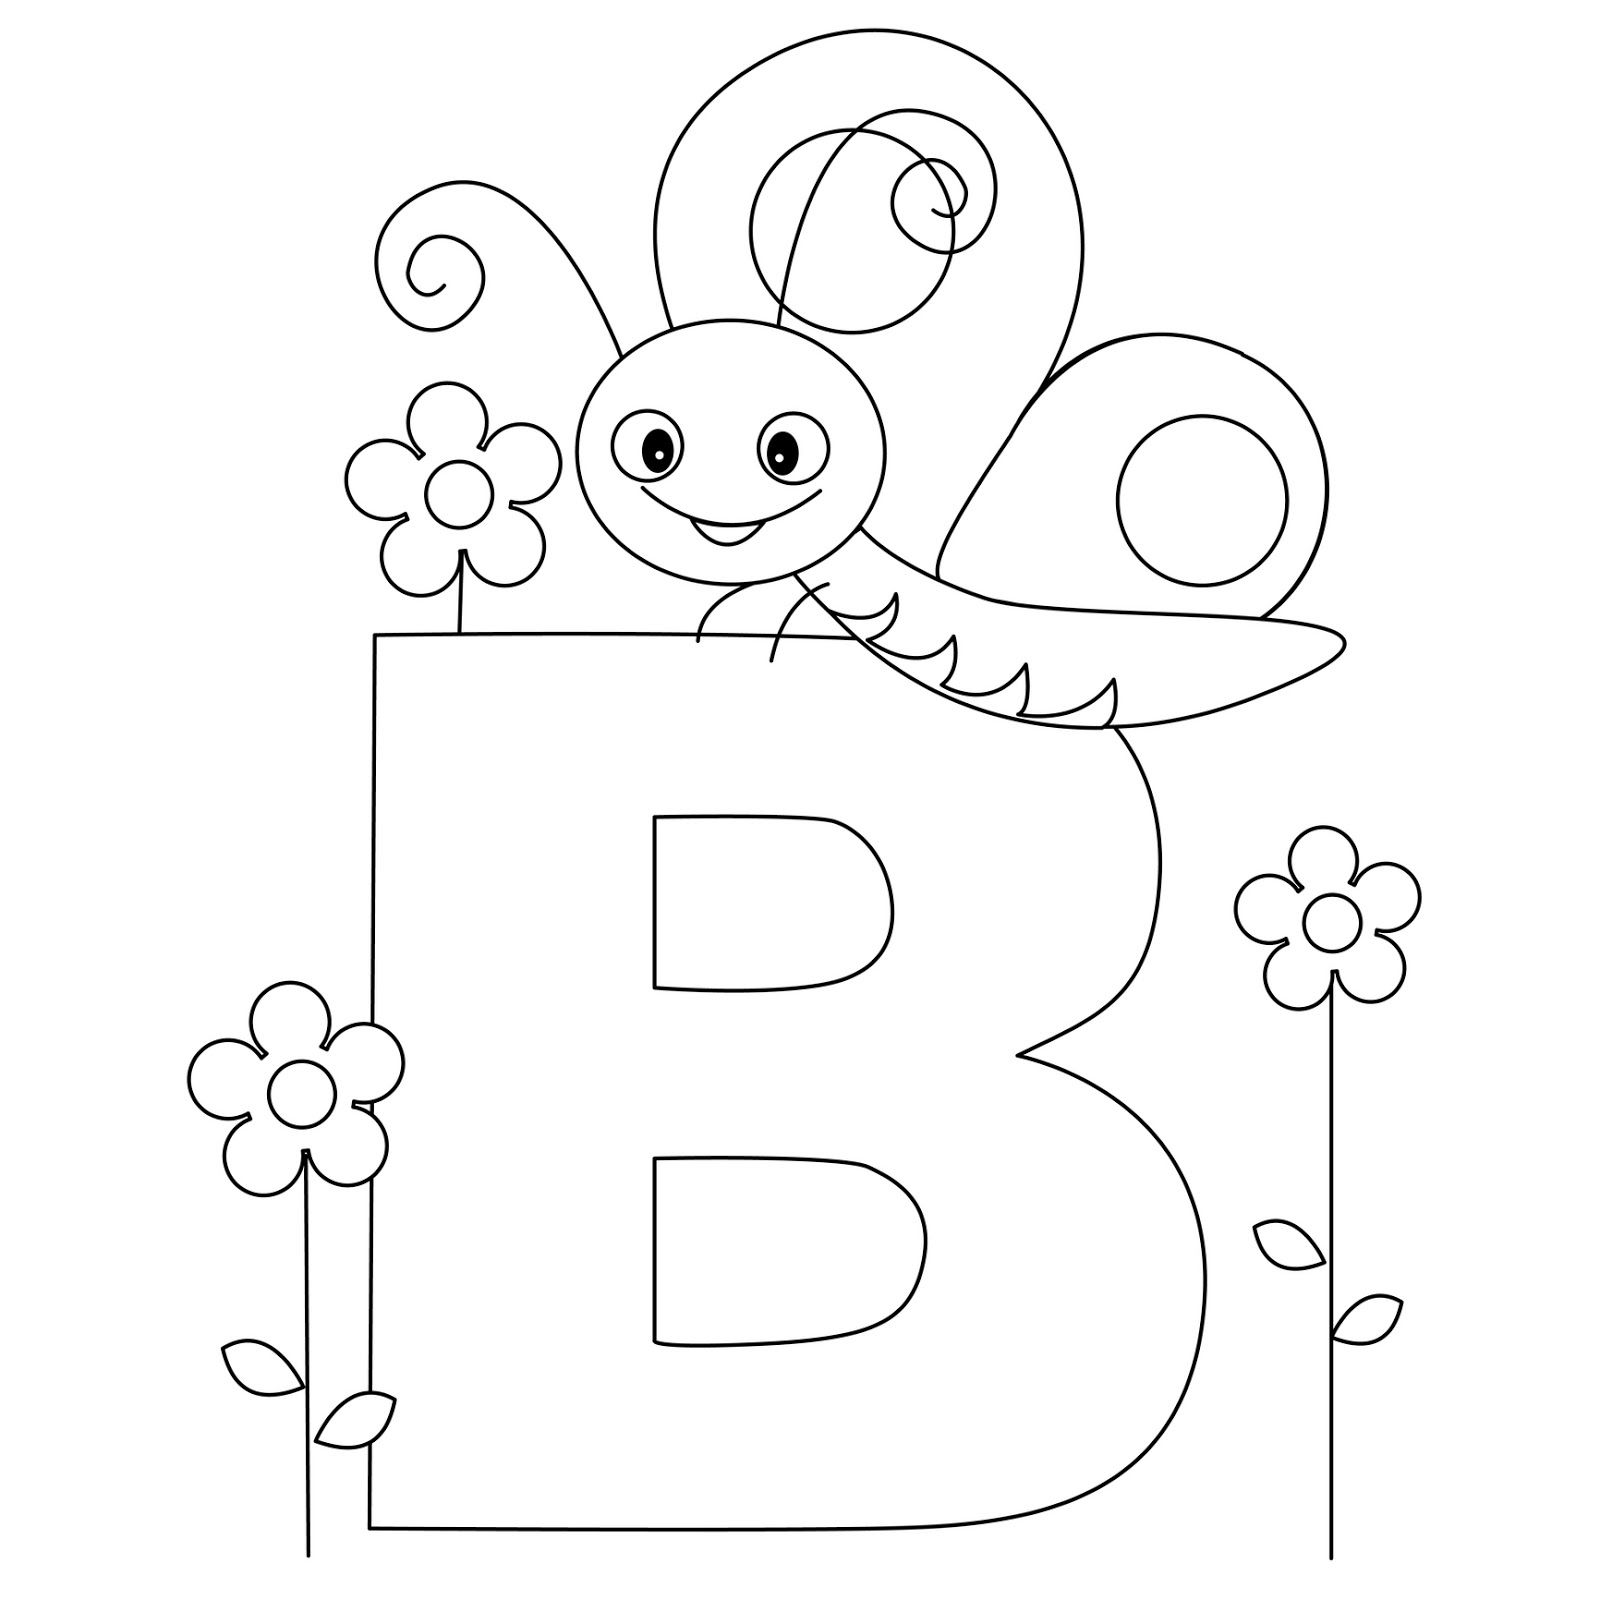 Coloring Rocks Abc Coloring Pages Kindergarten Coloring Pages Bug Coloring Pages